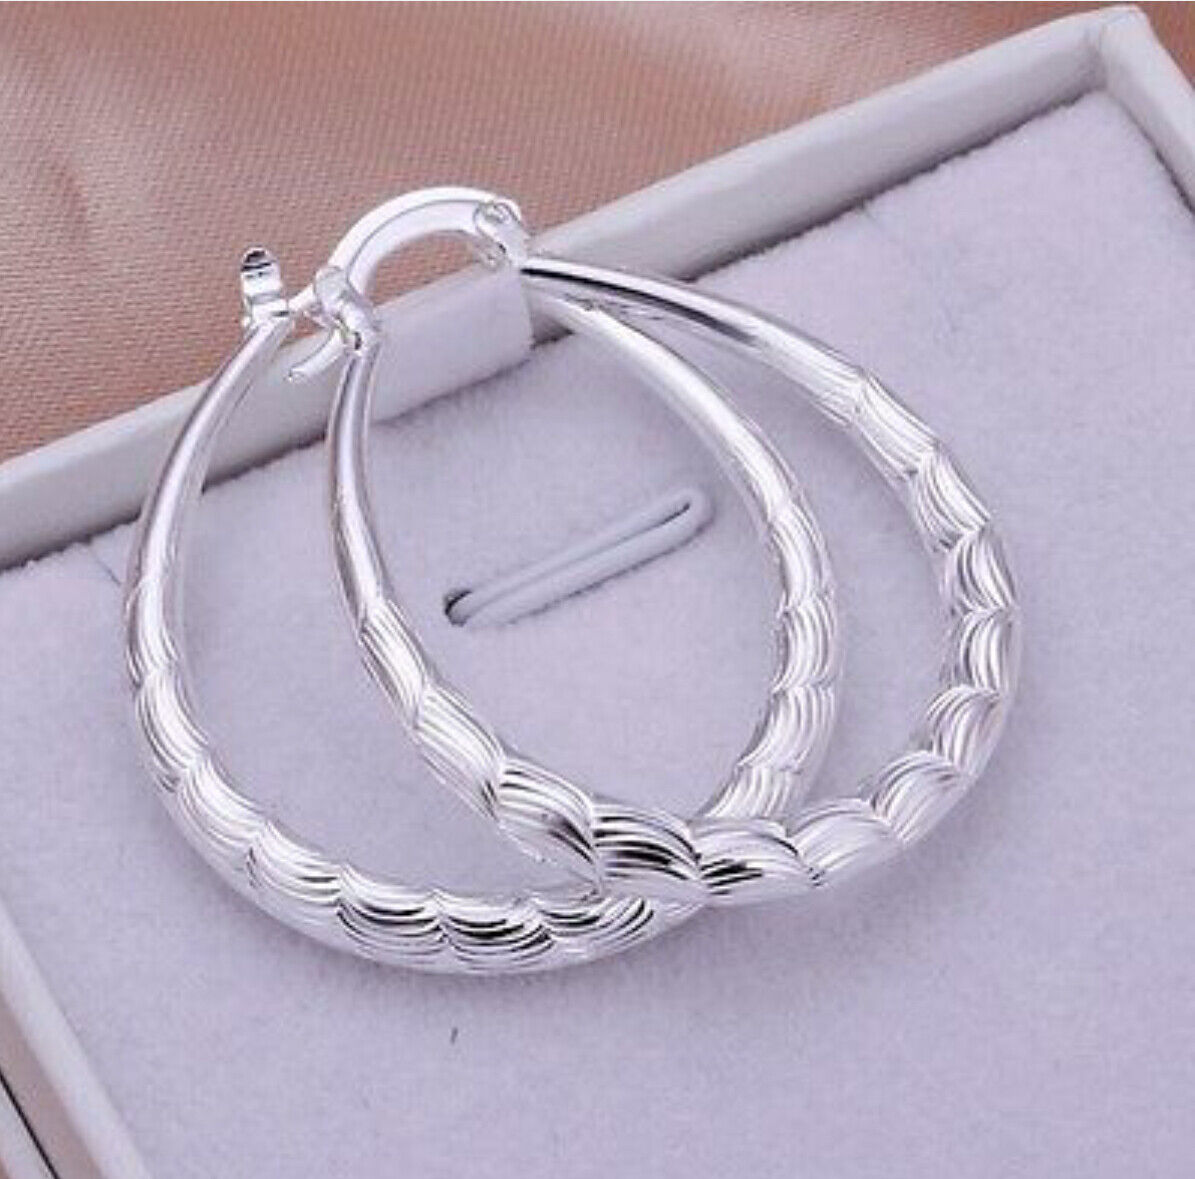 Jewellery - 925 Sterling Silver Oval Etched Hoop Pierced Women's Earrings